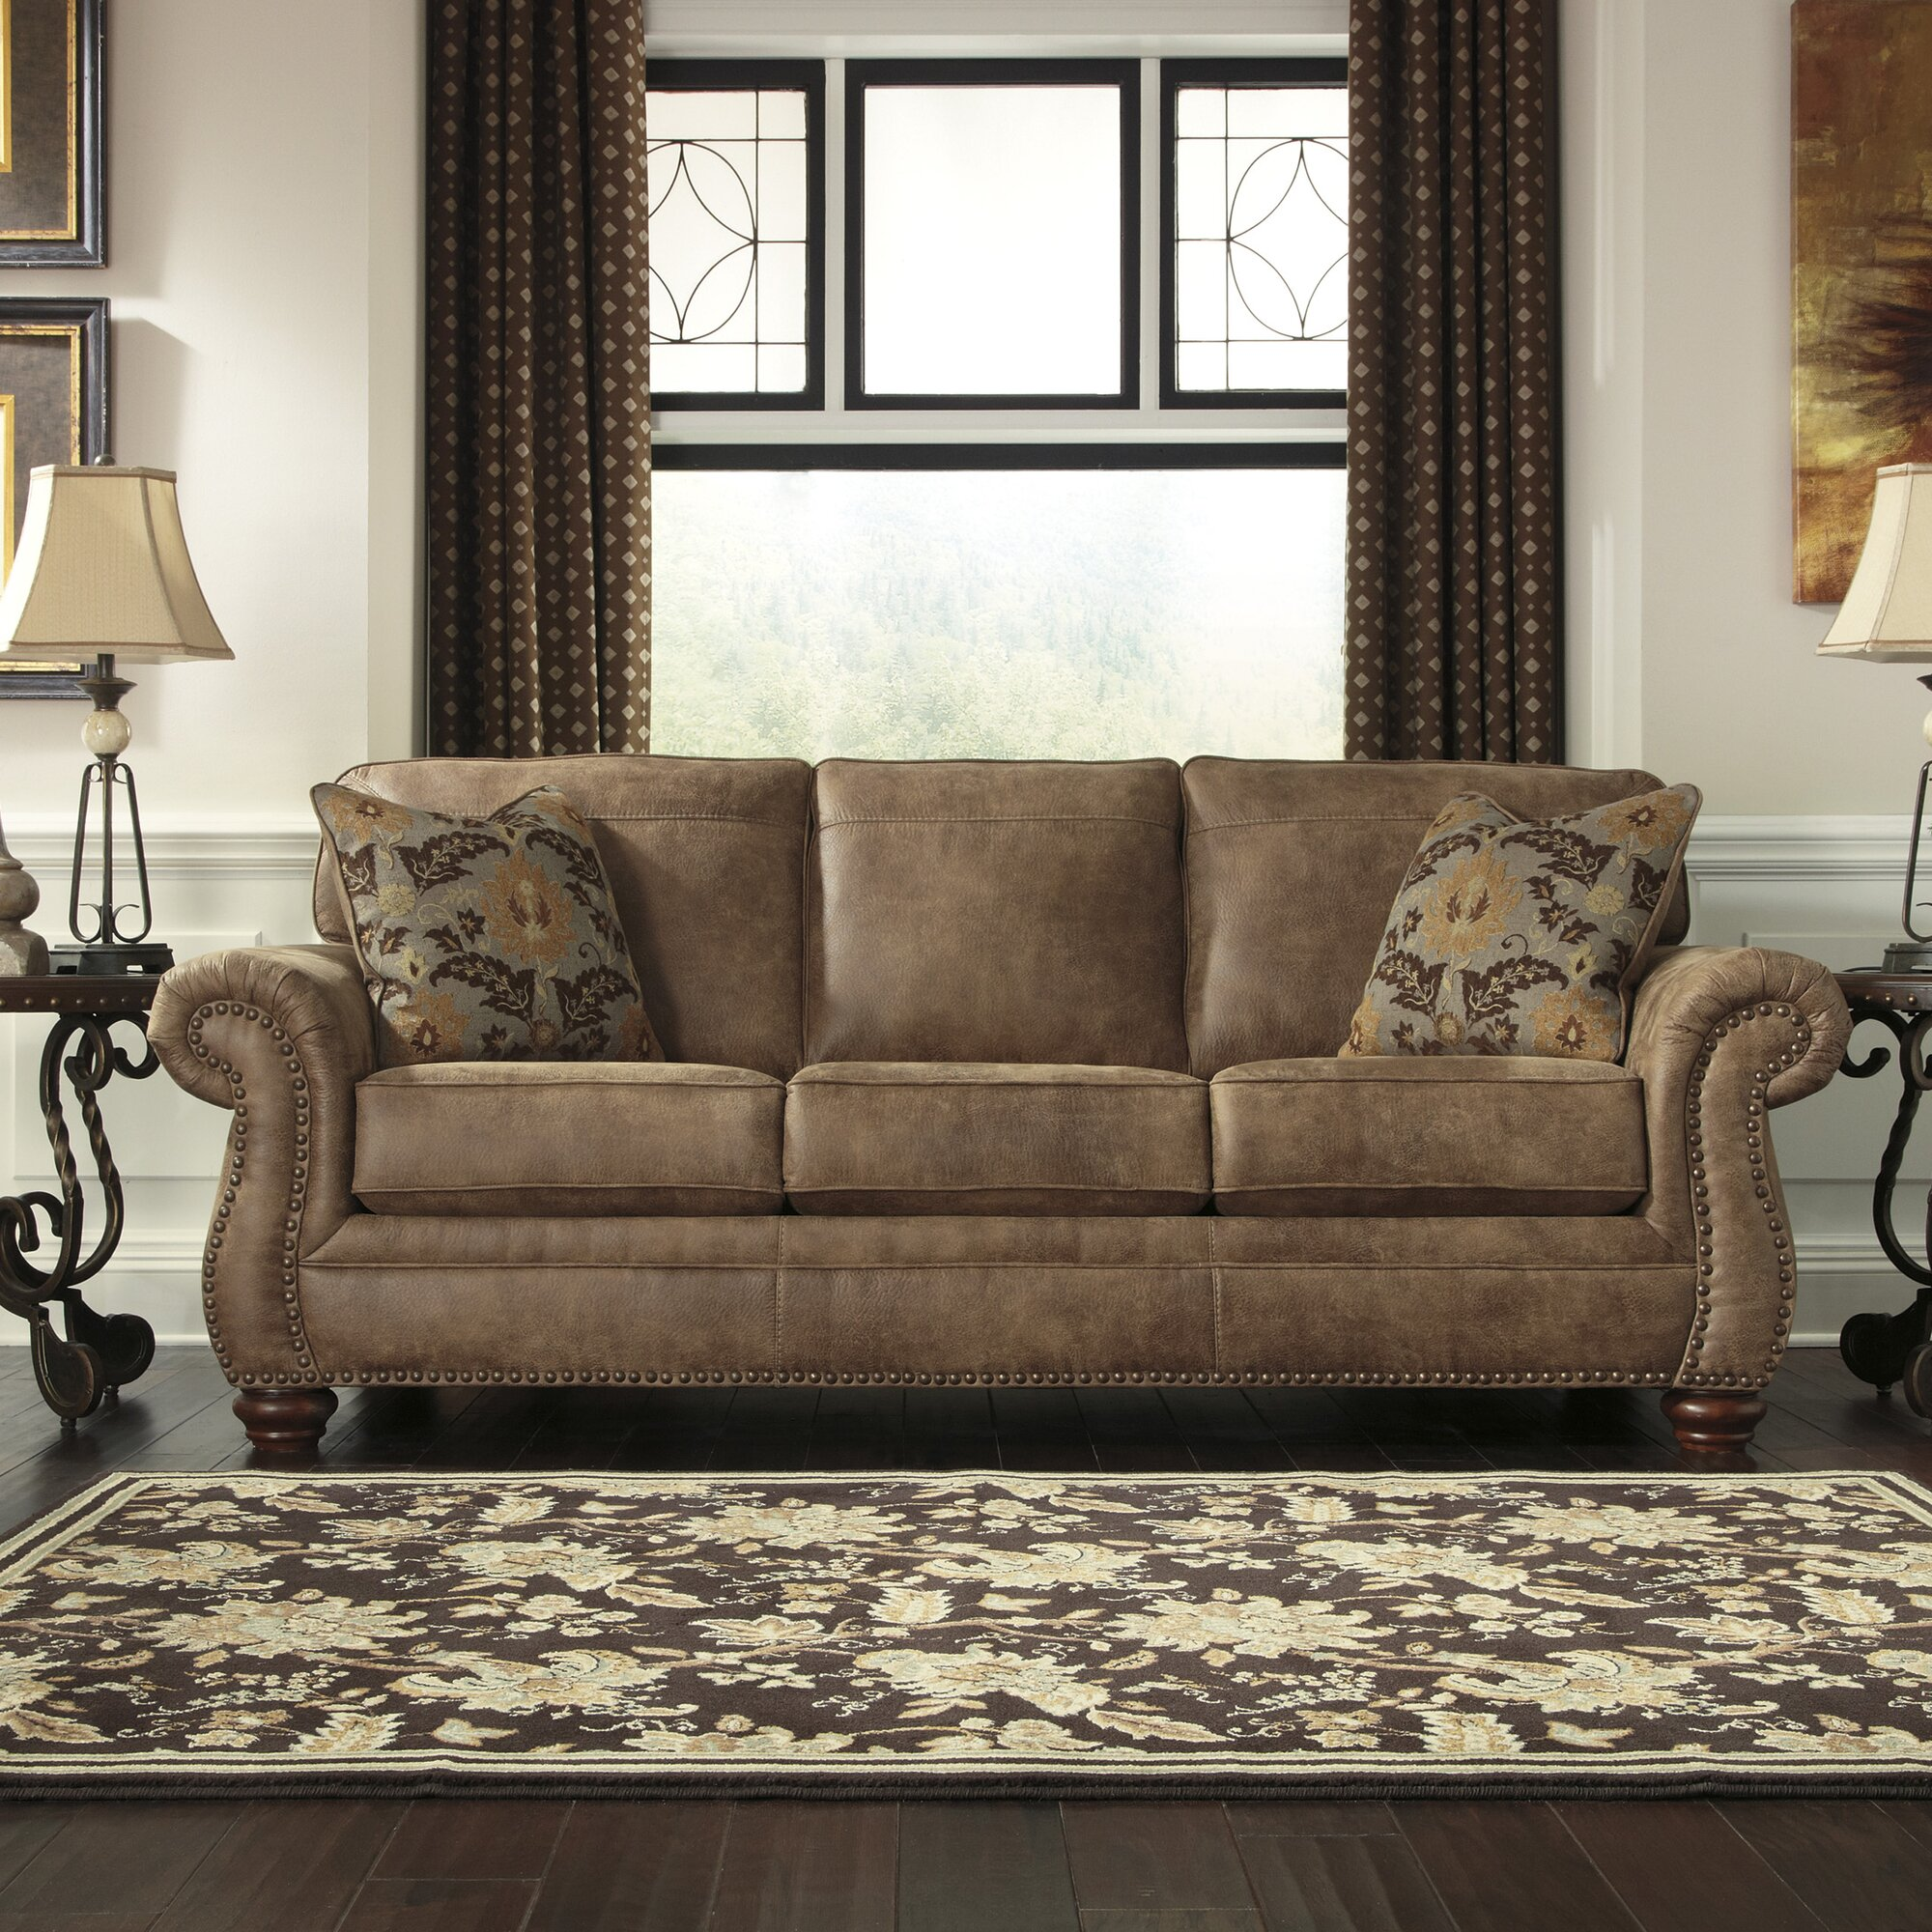 Signature Design by Ashley Bessemer Sofa & Reviews | Wayfair